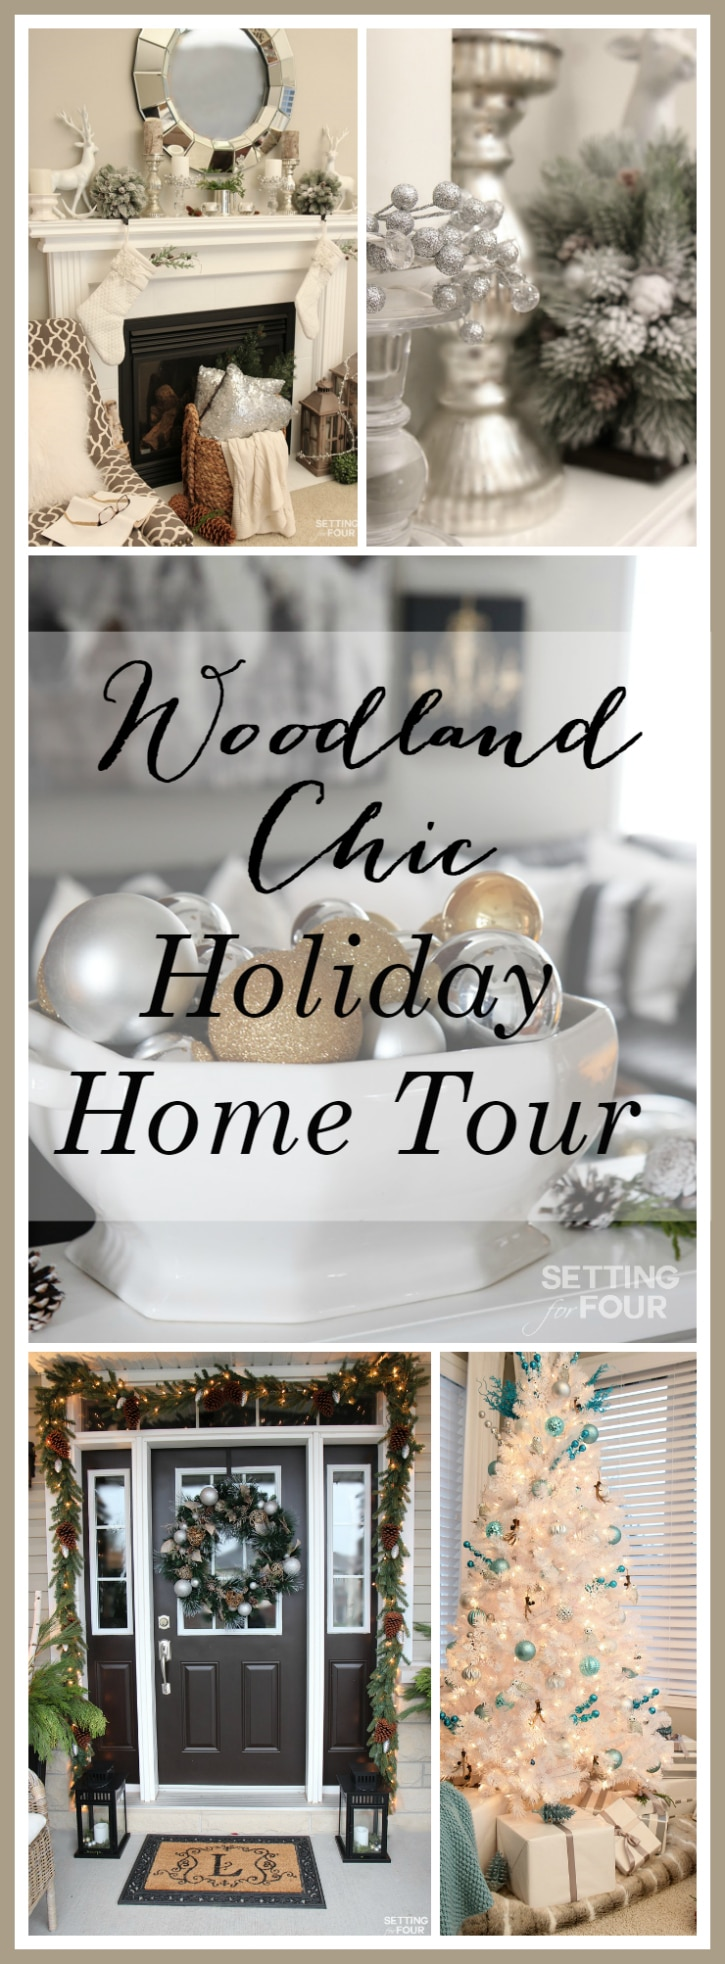 Welcome to my Woodland Chic Christmas home tour with Country Living Magazine! Get tons of decor ideas using glam, shimmer, metallics and shine mixed with lots of natural elements, woodland icons and neutrals! www.settingforfour.com